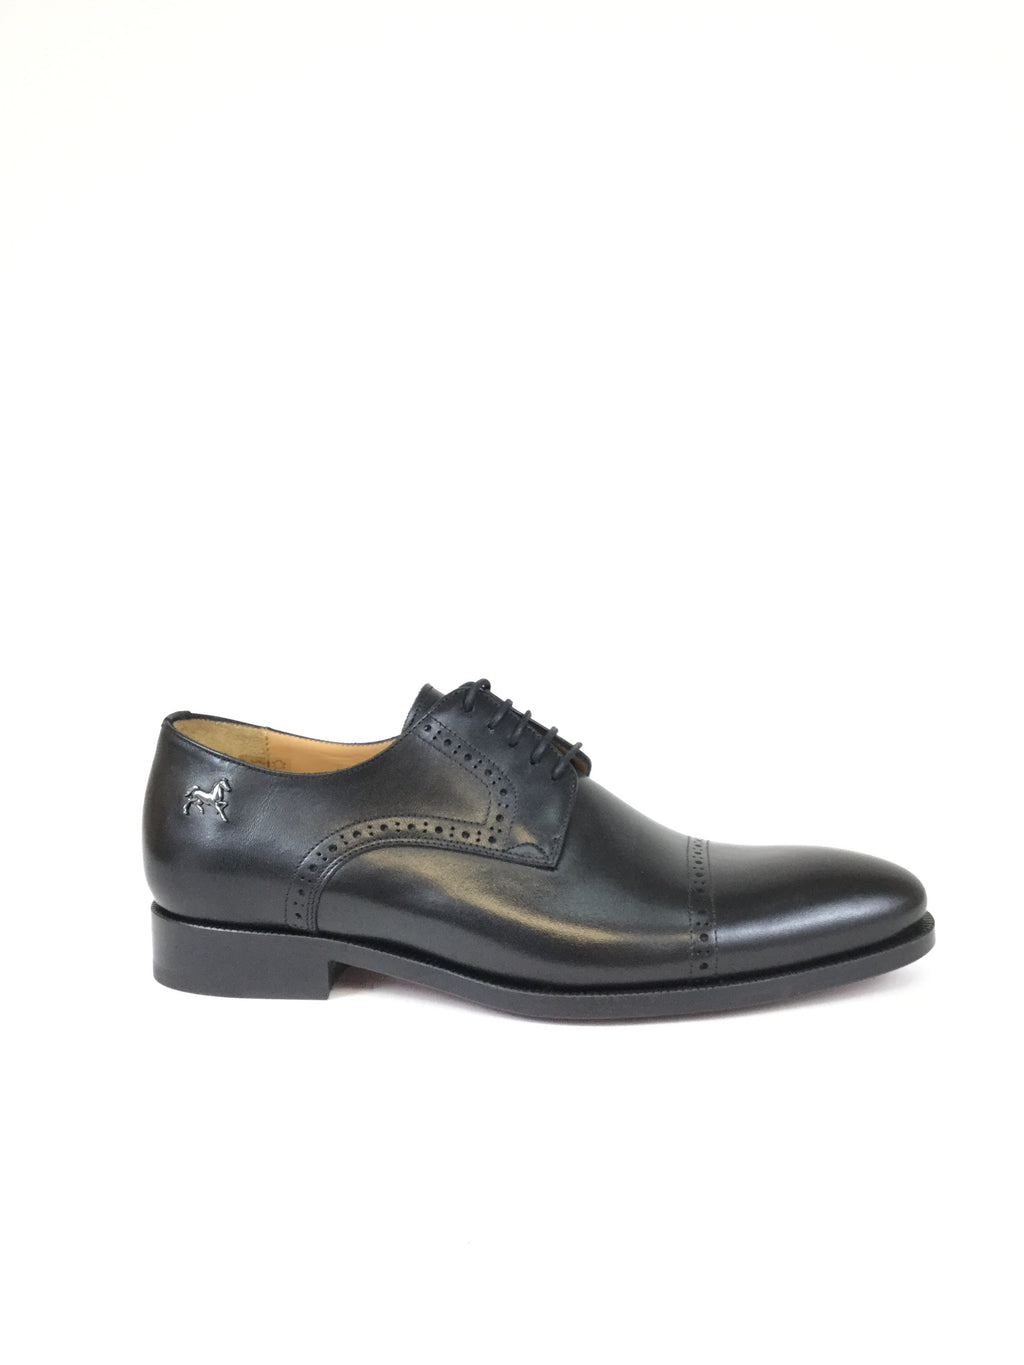 Black Cap Toe Brogue